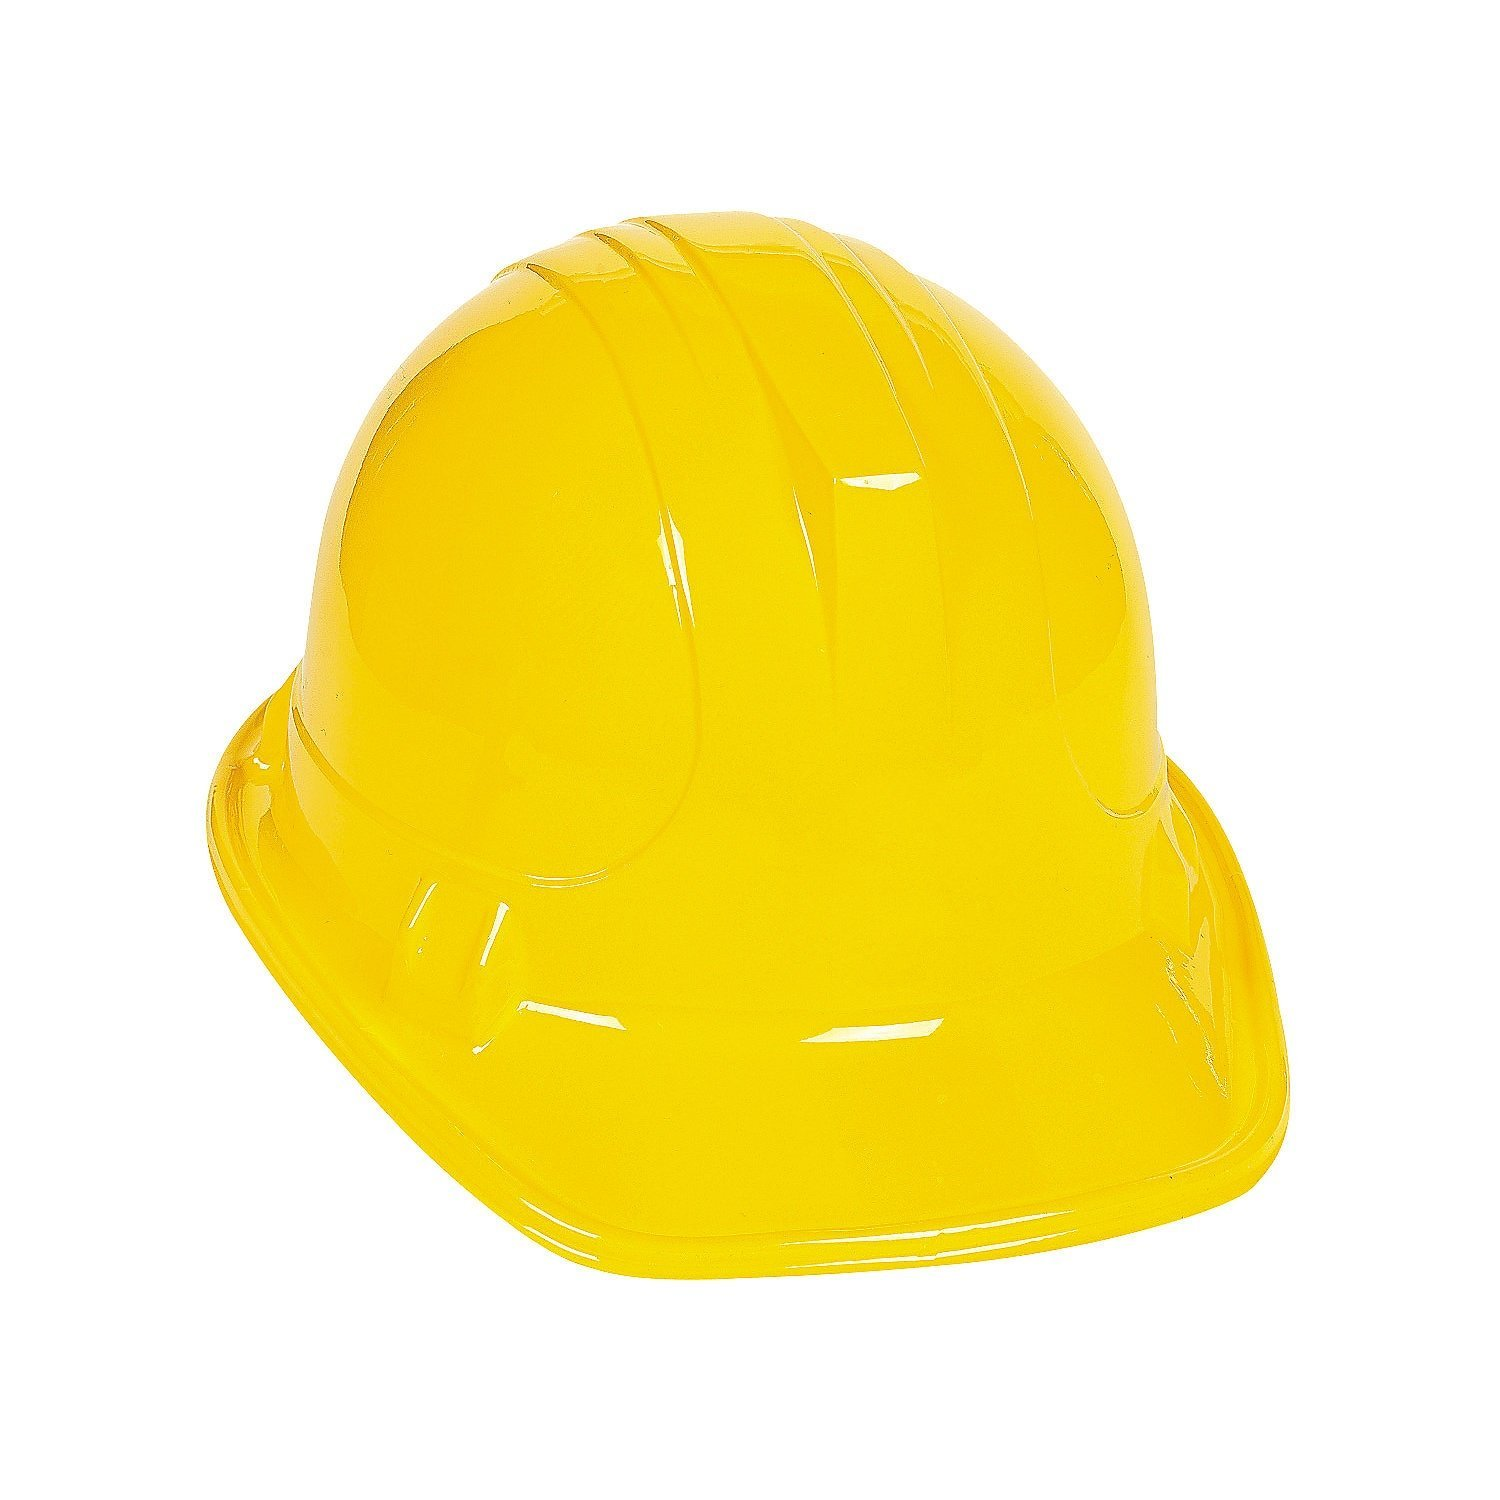 Yellow Construction Hard Hat Plastic Cap Costume Birthday Party ...